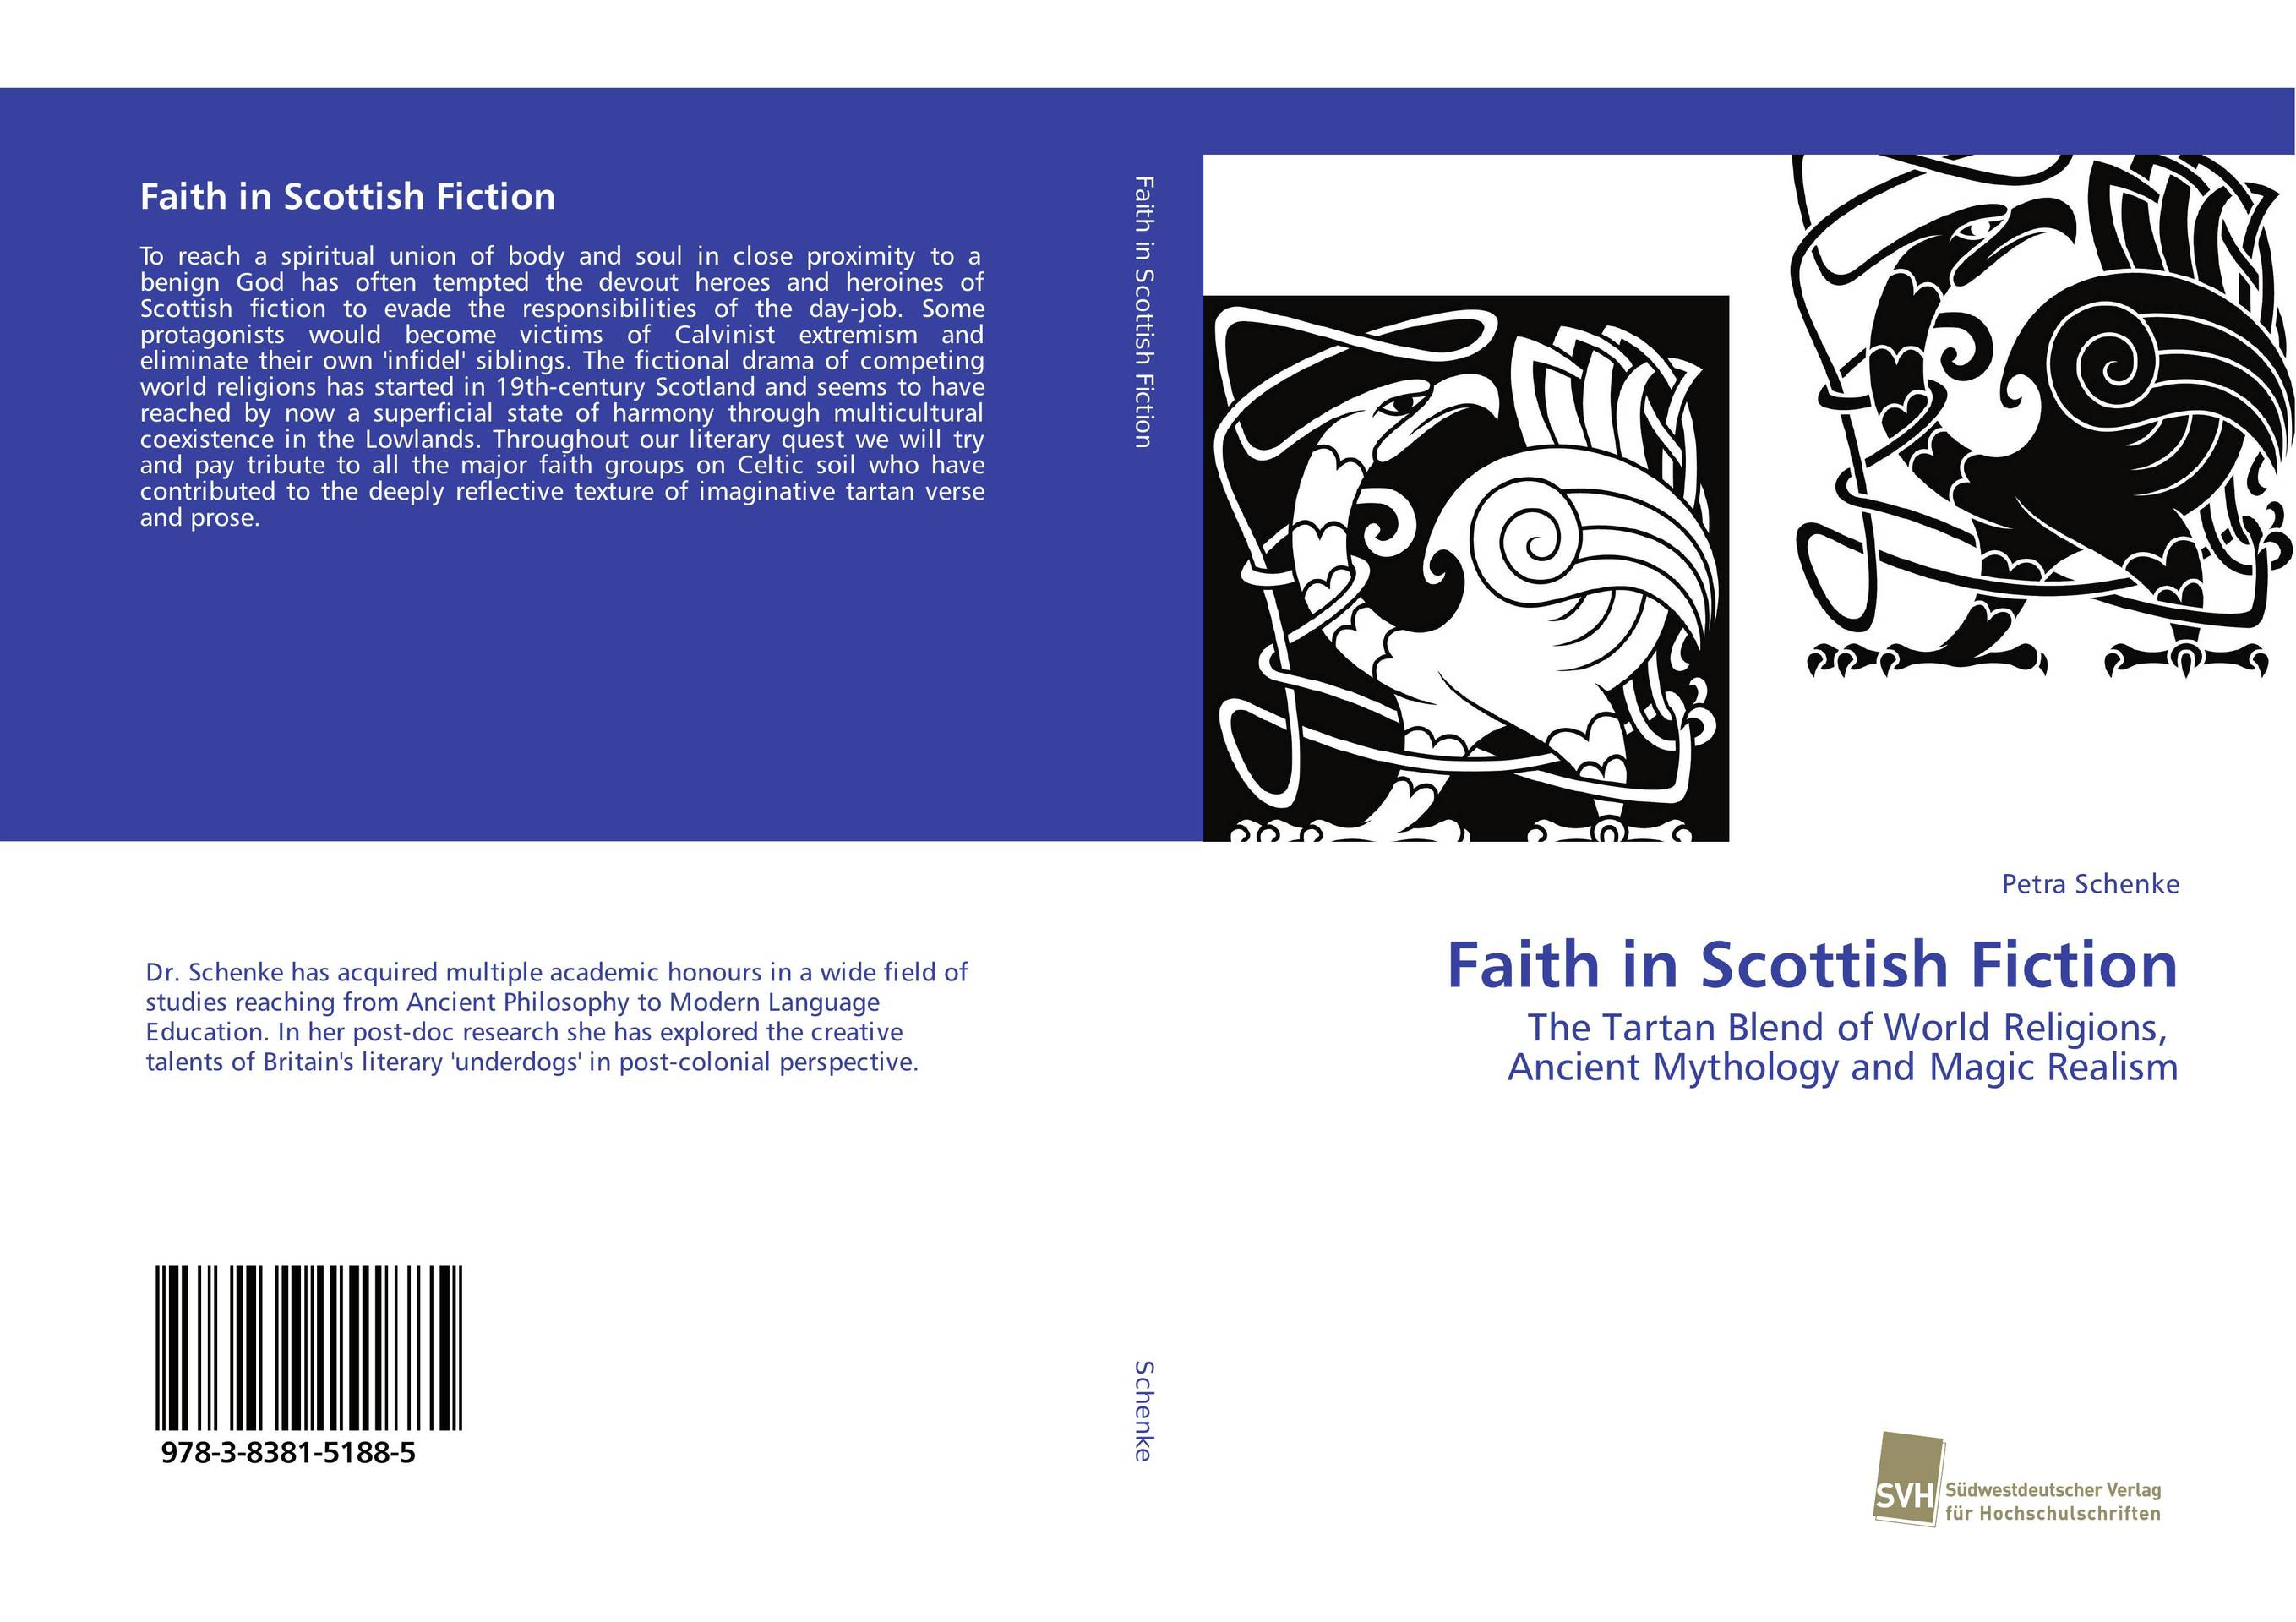 Faith in Scottish Fiction infidel